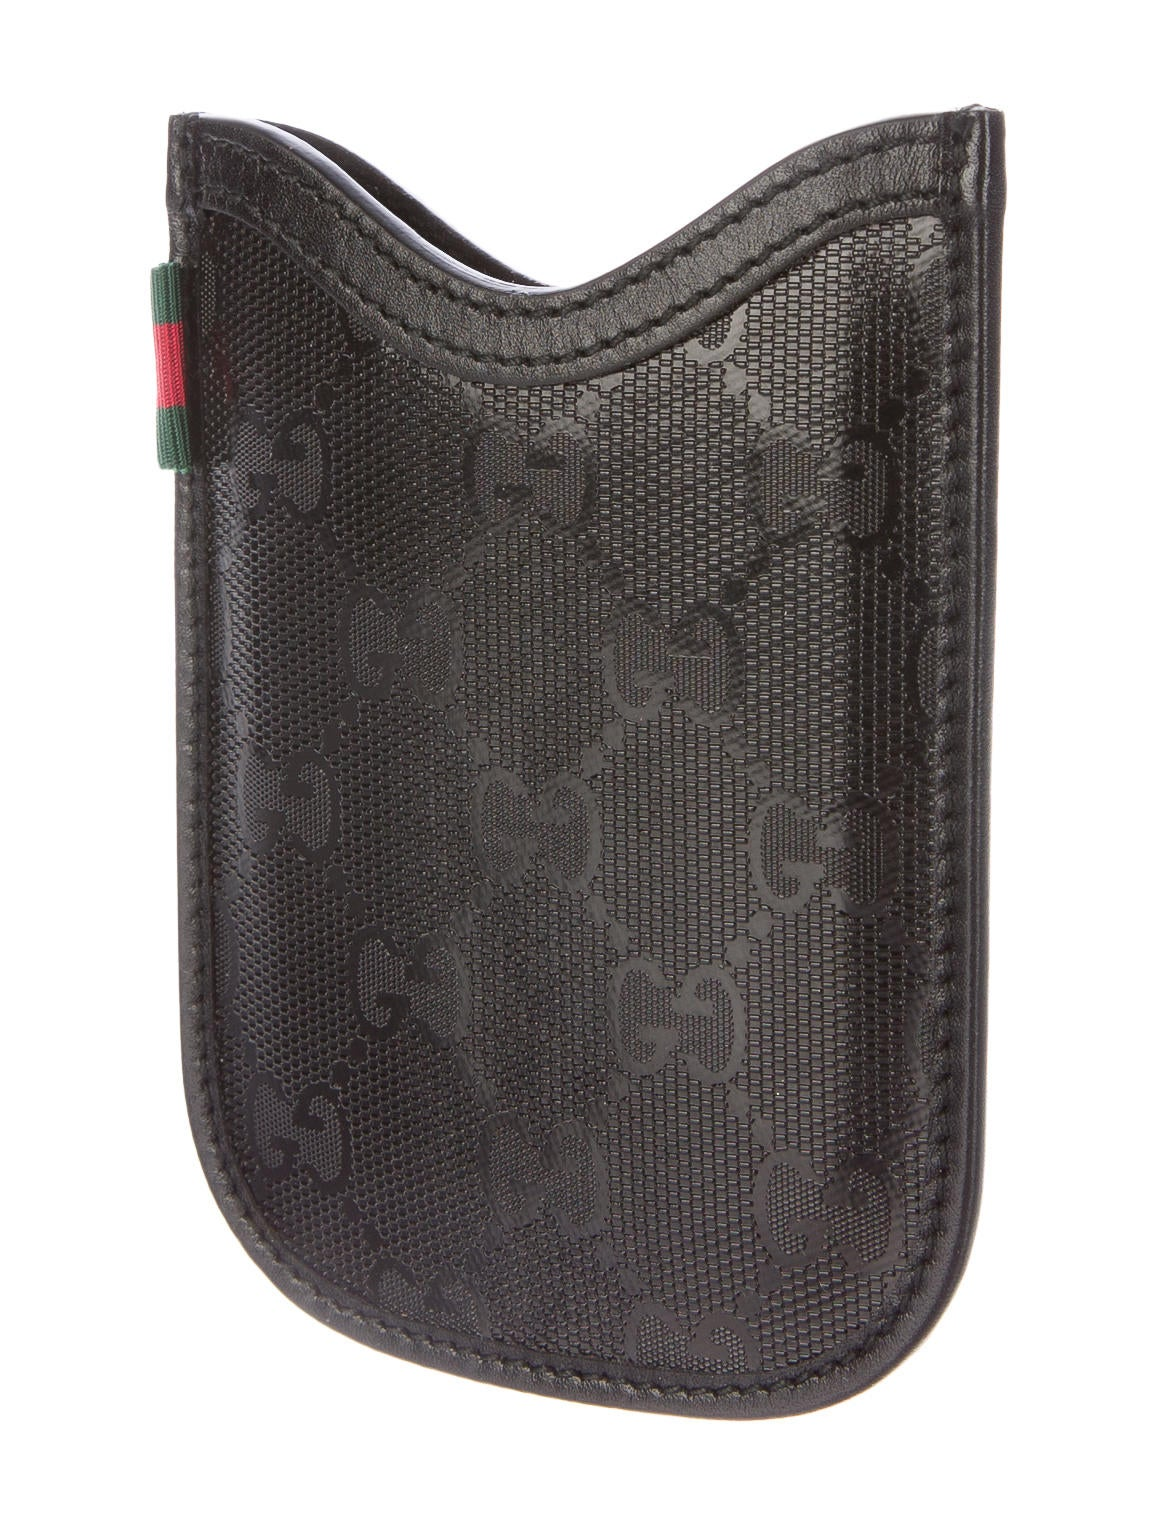 Gucci GG Imprime Blackberry Phone Case w/ Tags ...